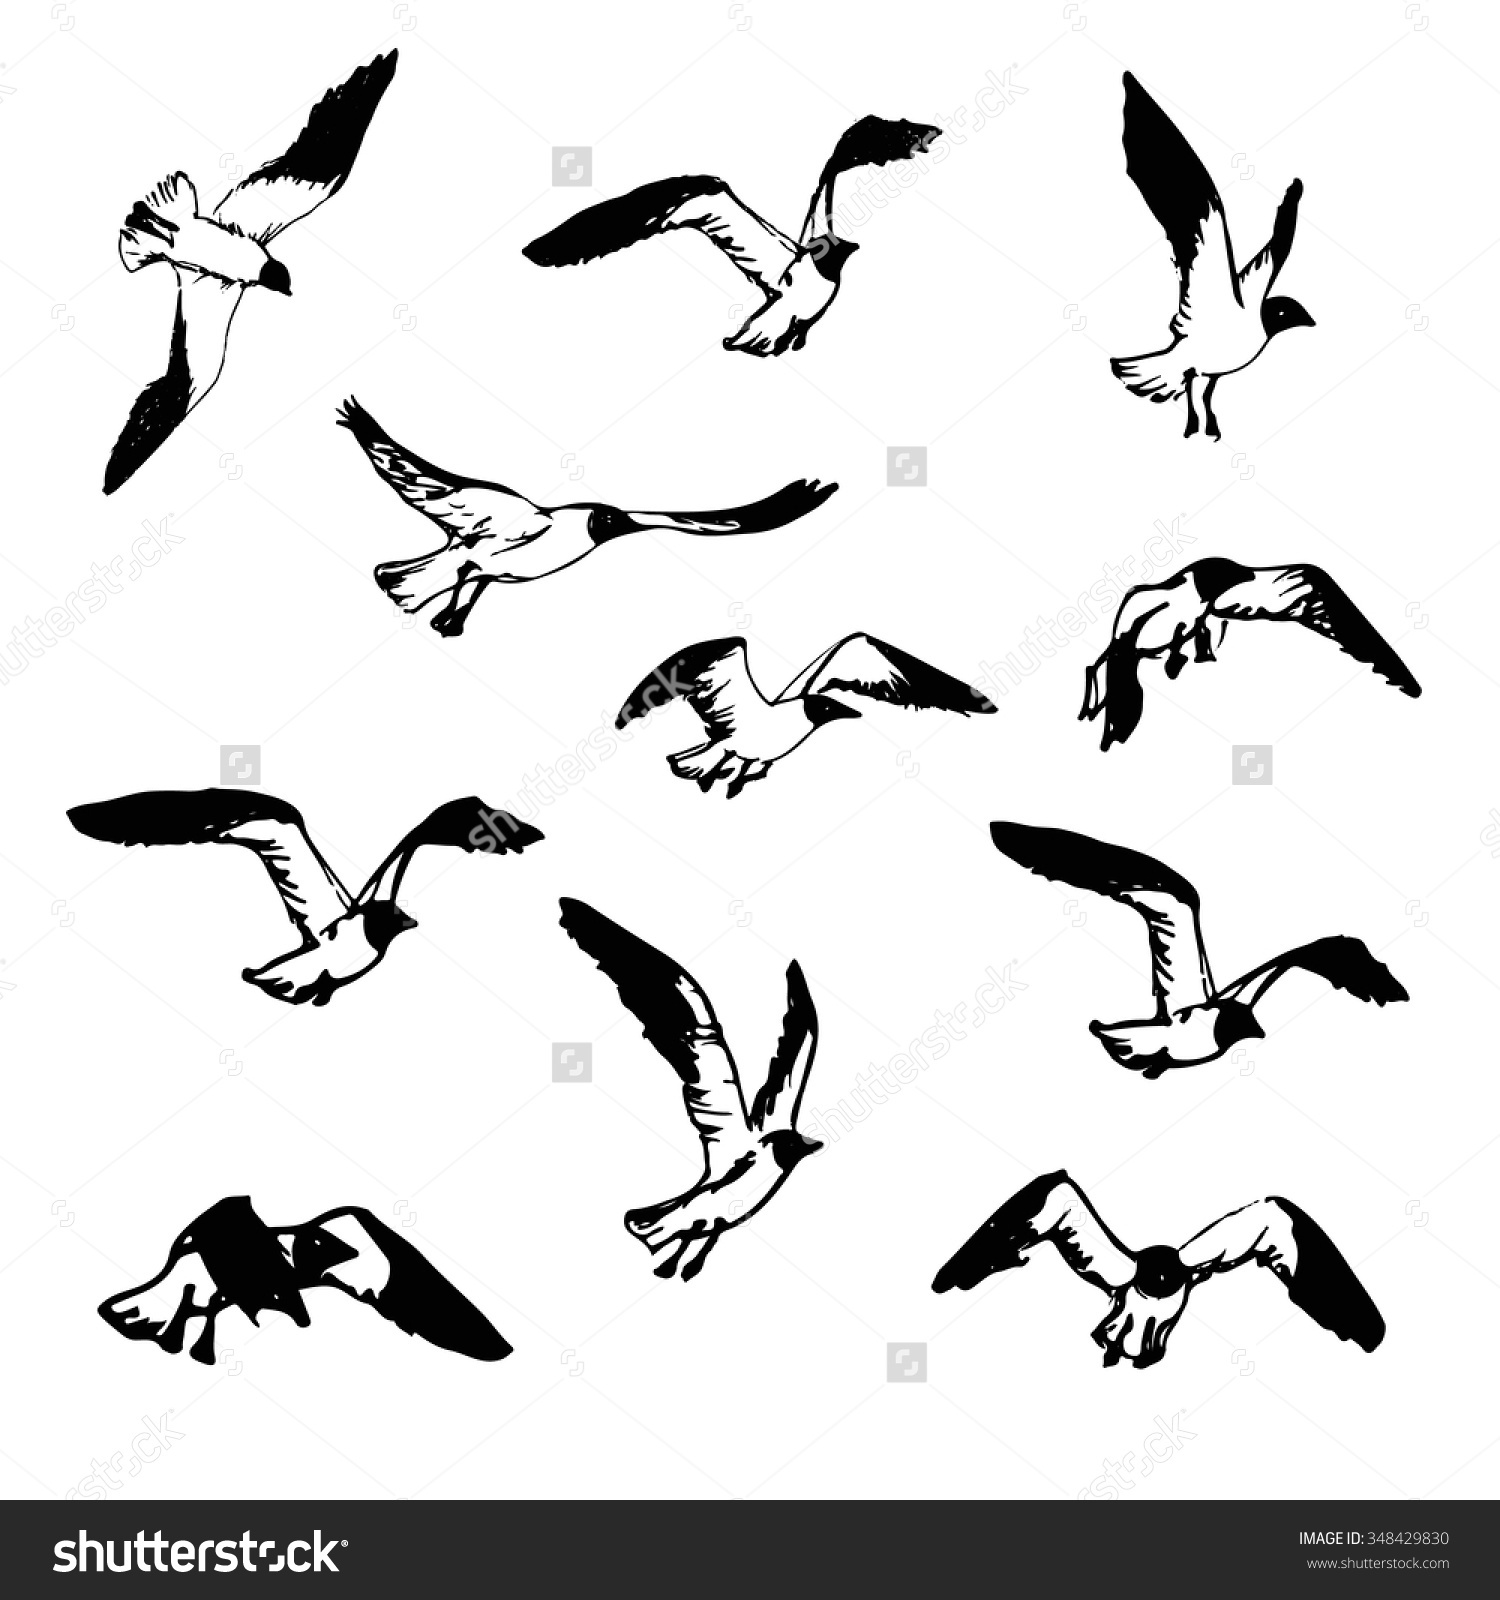 Drawn seagull black and white Illustration Hand And White Drawn